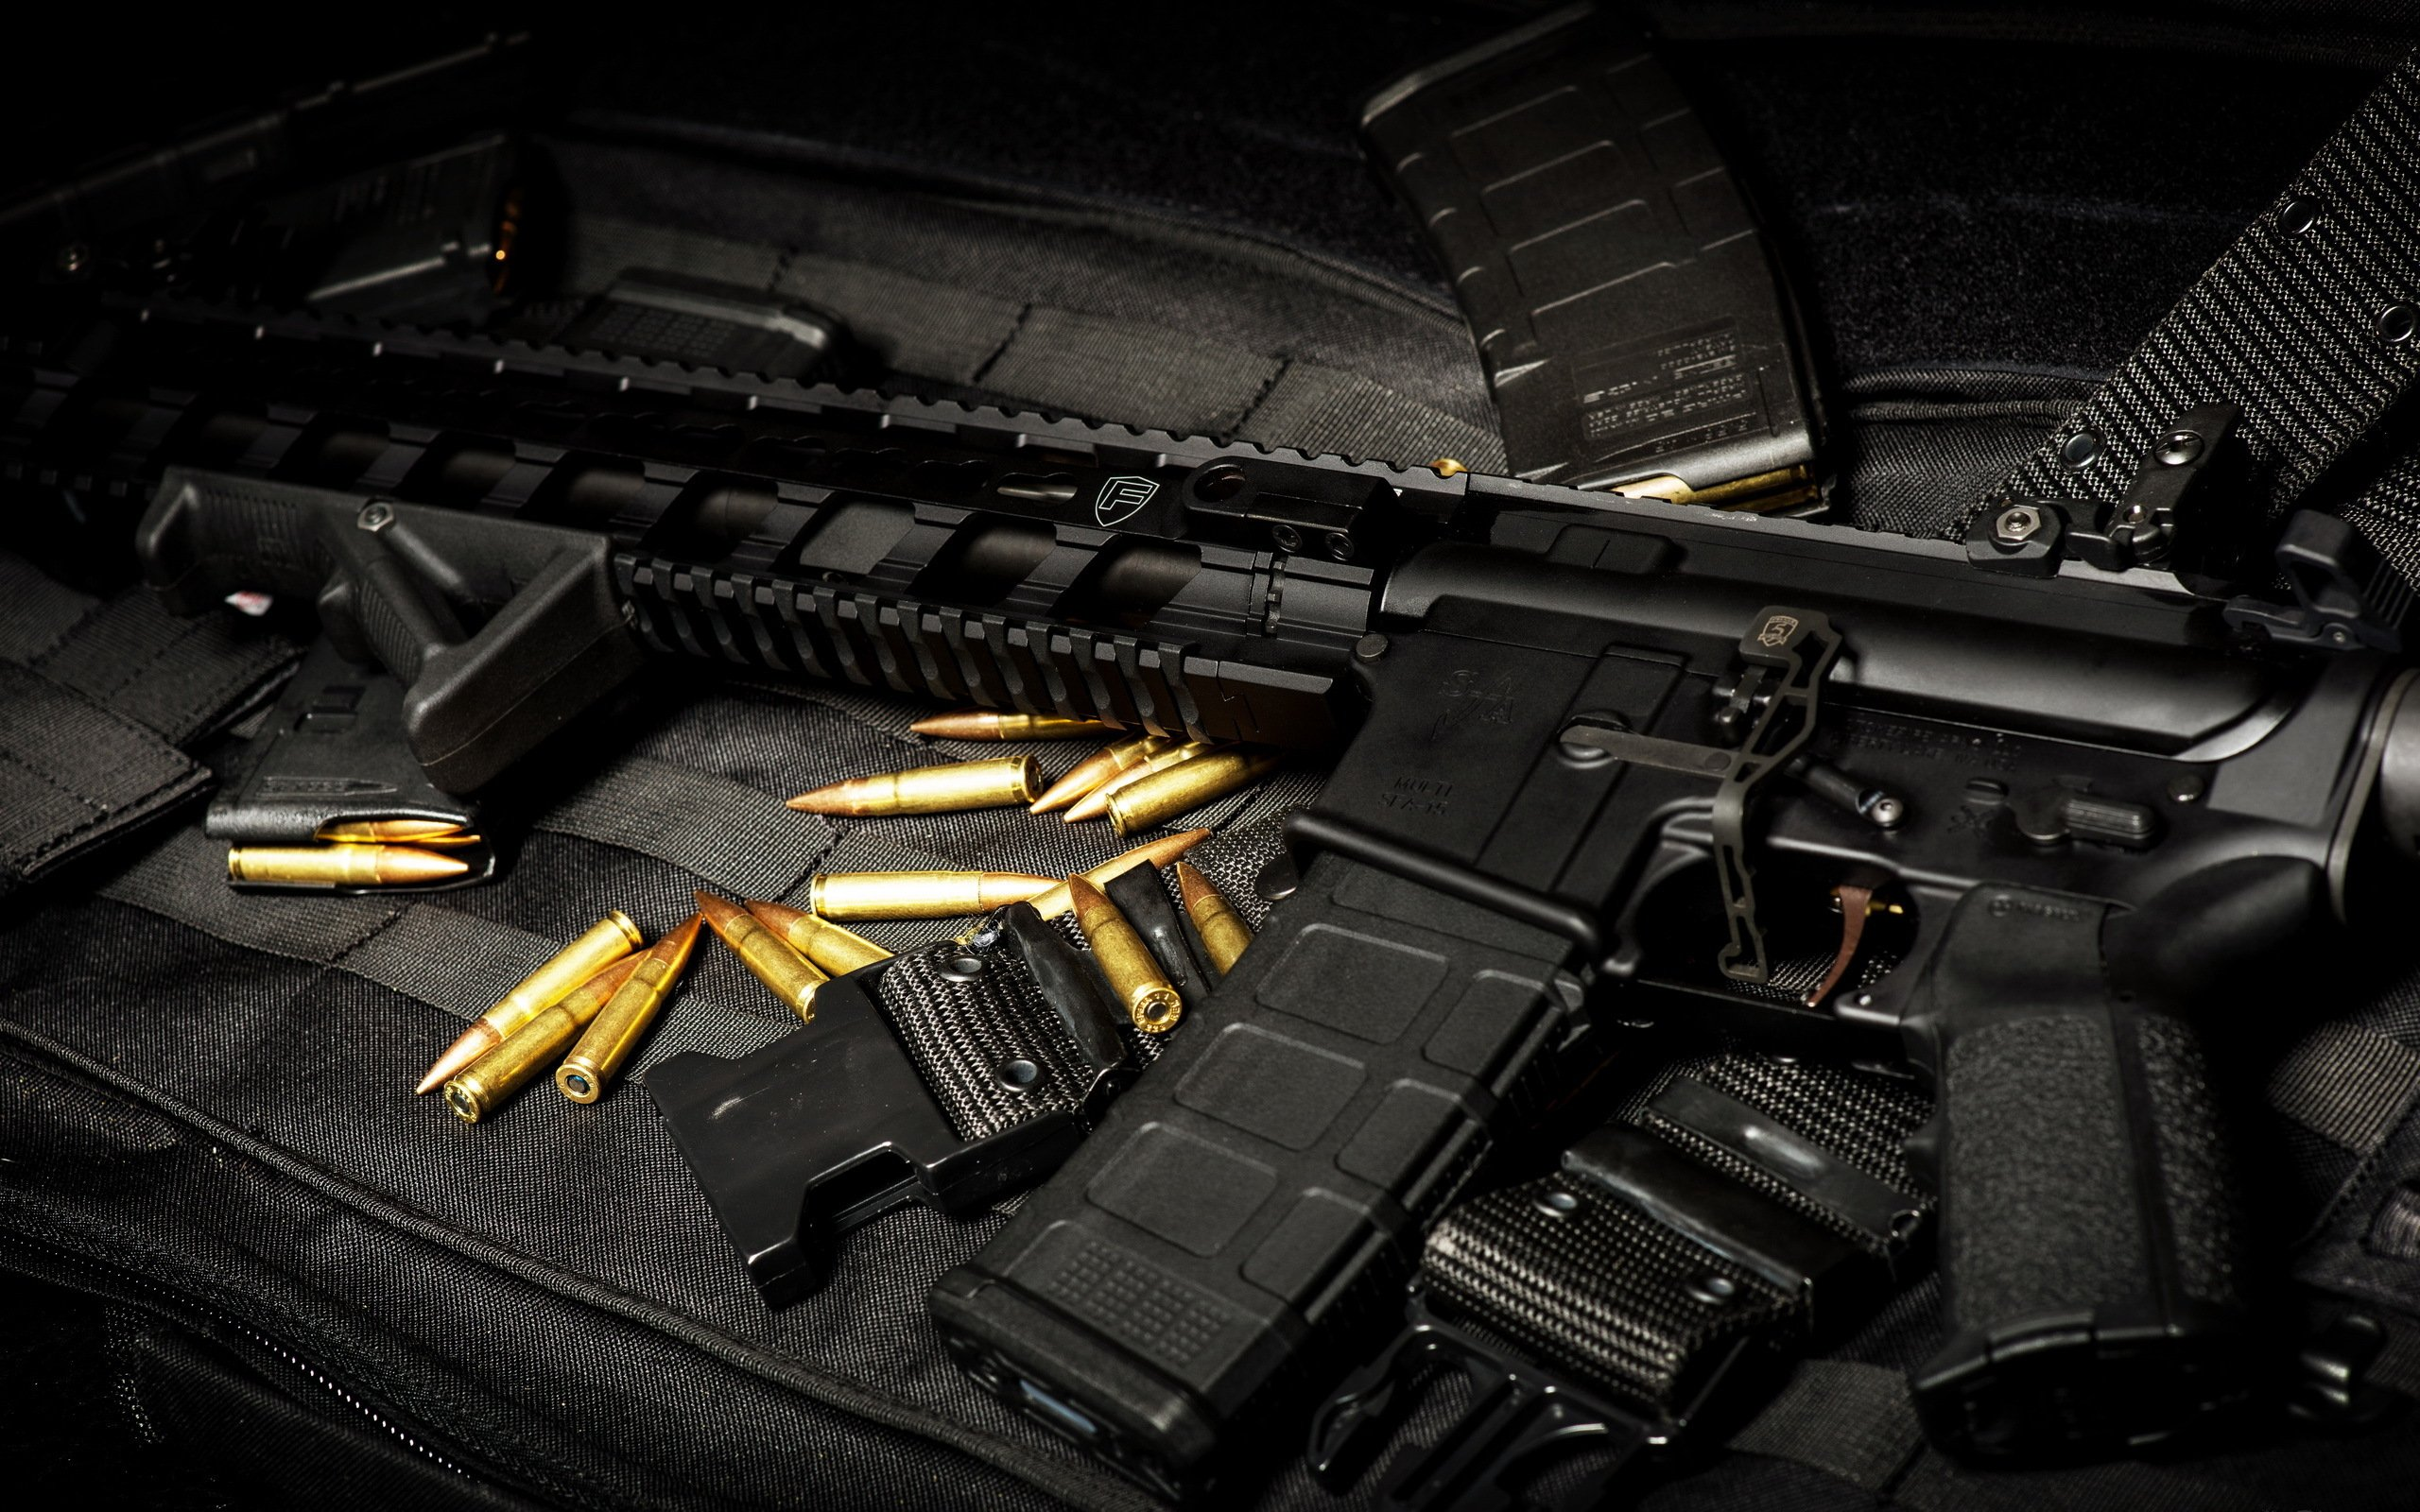 automatic weapon ammo gun military police wallpaper background 2560x1600